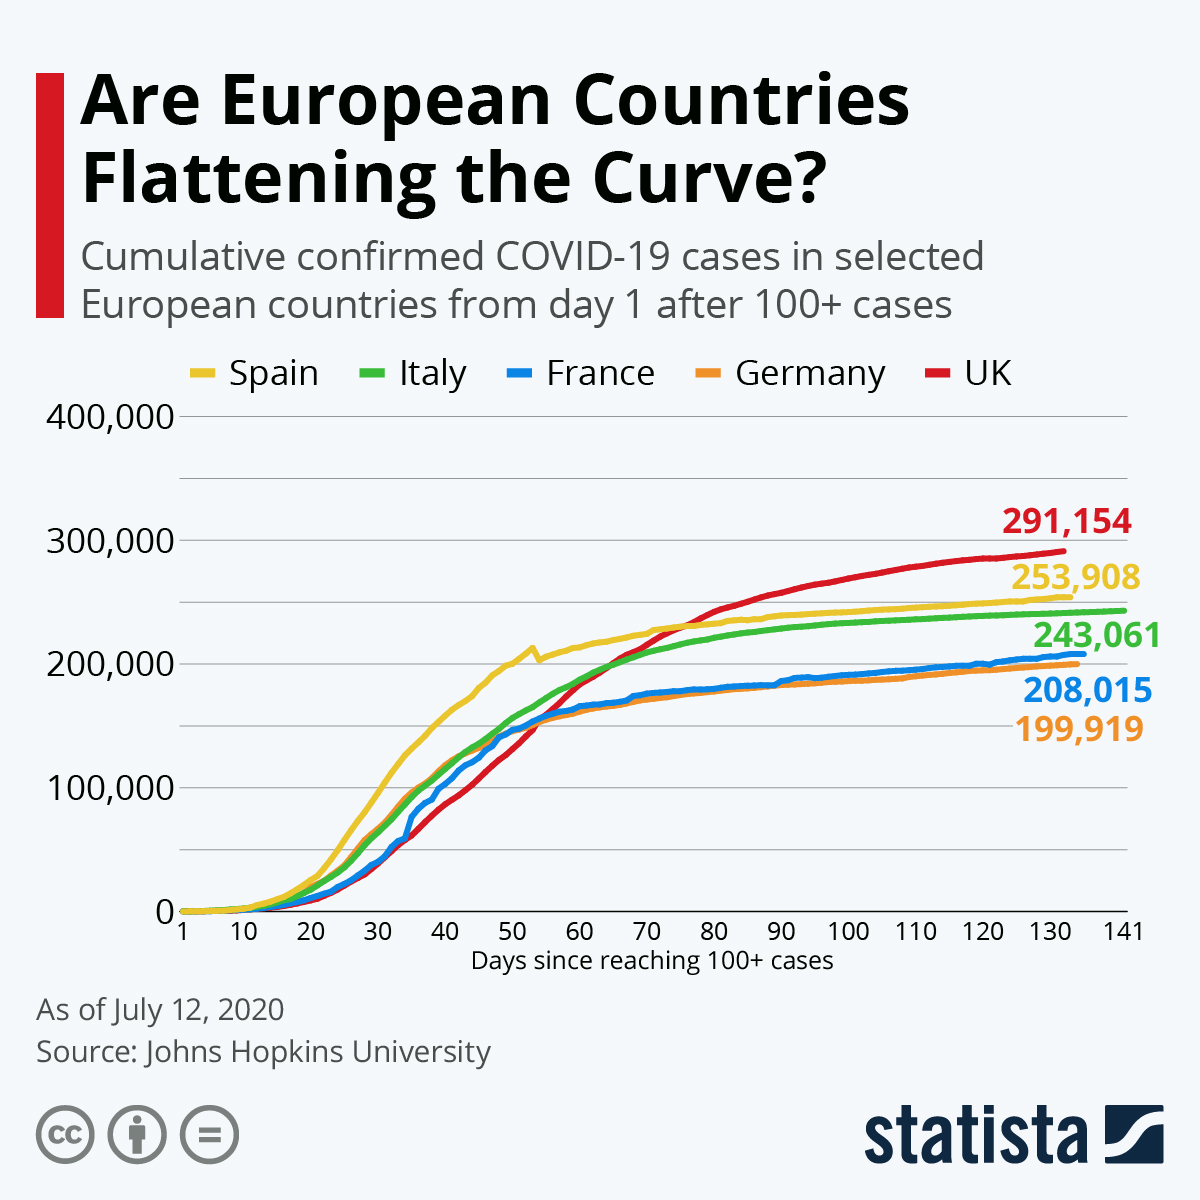 Are European Countries Flattening the Curve? #infographic